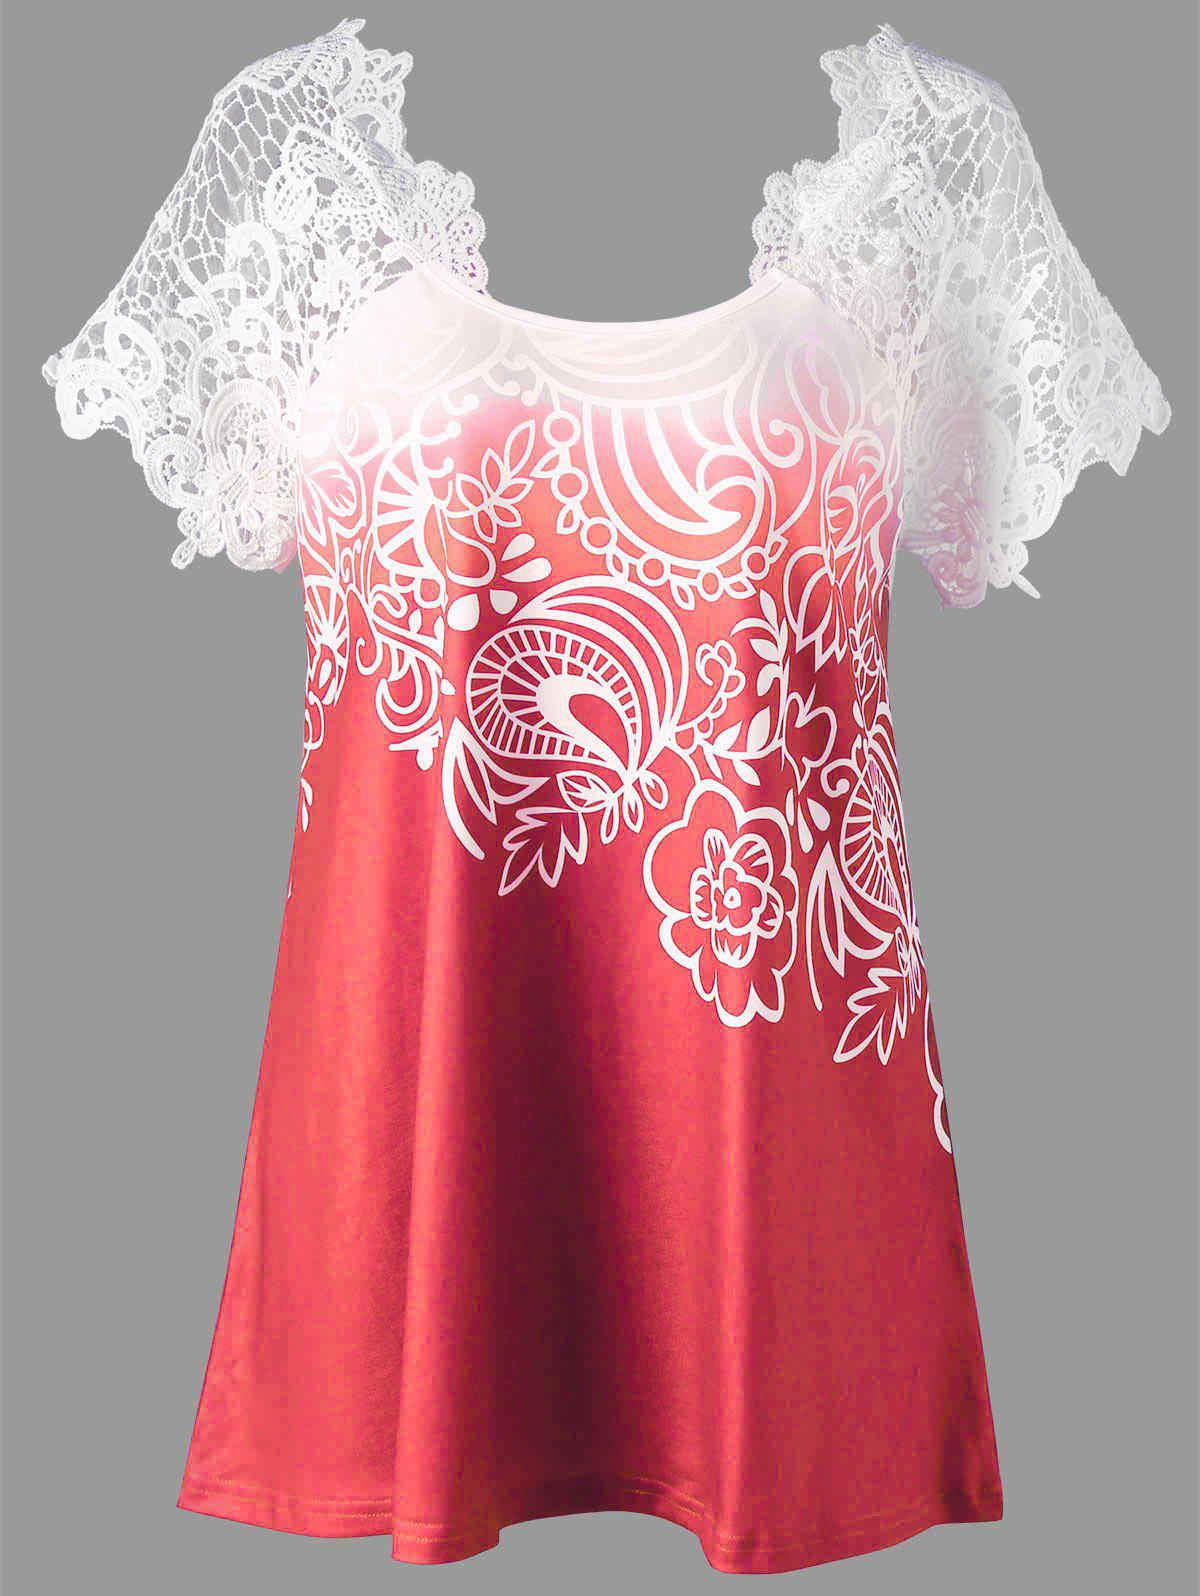 Lace Panel Raglan Sleeve Floral Plus Size TopWOMEN<br><br>Size: 4XL; Color: WATERMELON RED; Material: Polyester,Spandex; Shirt Length: Regular; Sleeve Length: Short; Collar: Round Neck; Style: Fashion; Season: Fall,Spring,Summer; Embellishment: Lace; Pattern Type: Floral; Weight: 0.2300kg; Package Contents: 1 x Top;